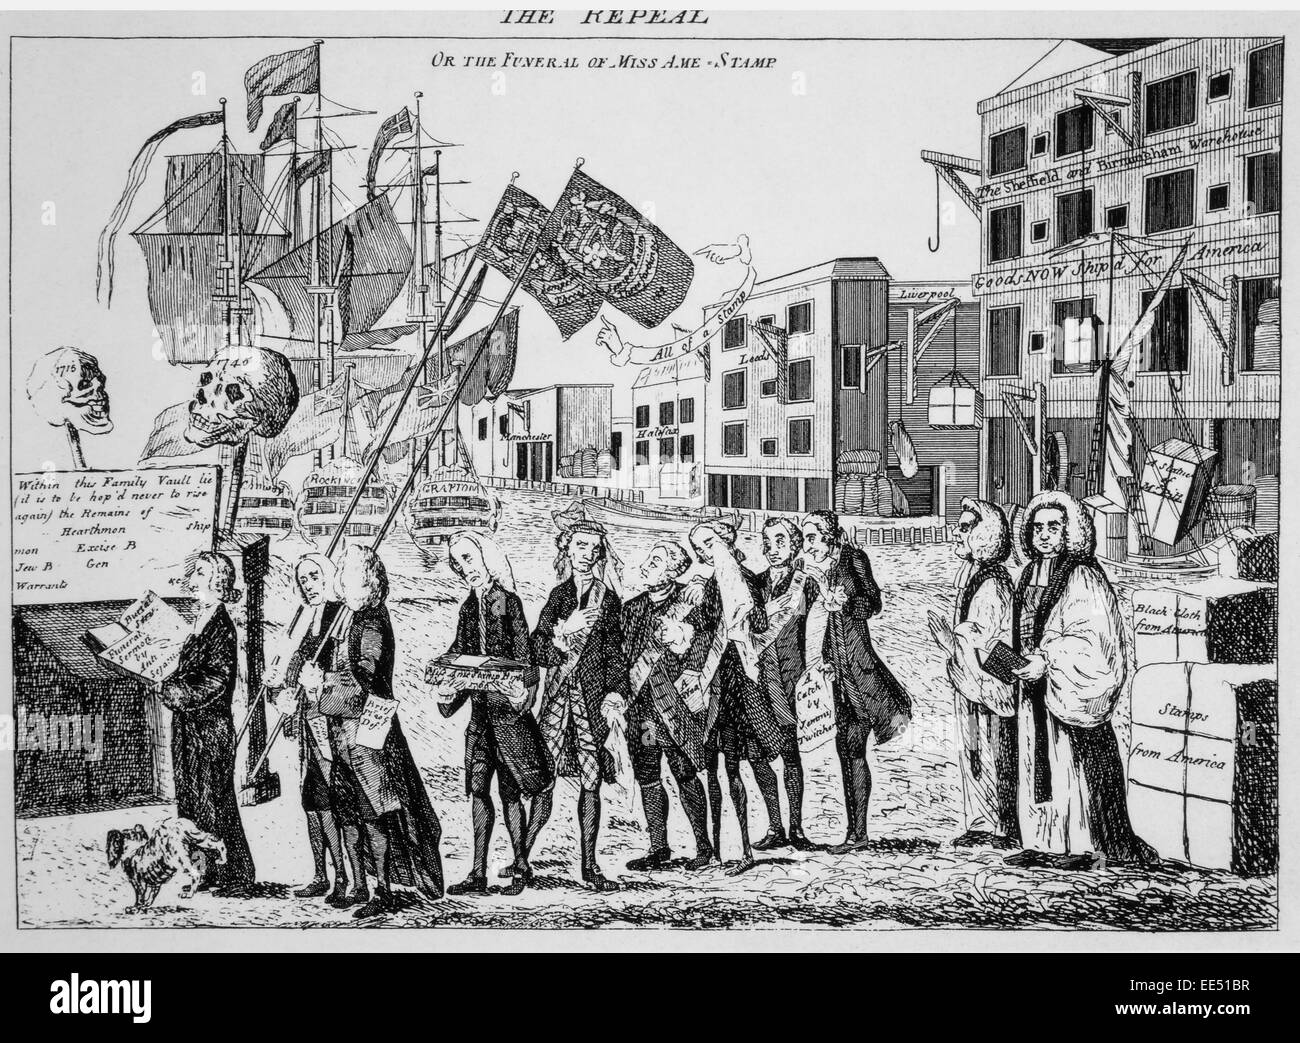 a history of the stamp act in england The stamp act was the most controversial act during the colonial period it created the stamp act congress and became a nightmare for england the history junkie.